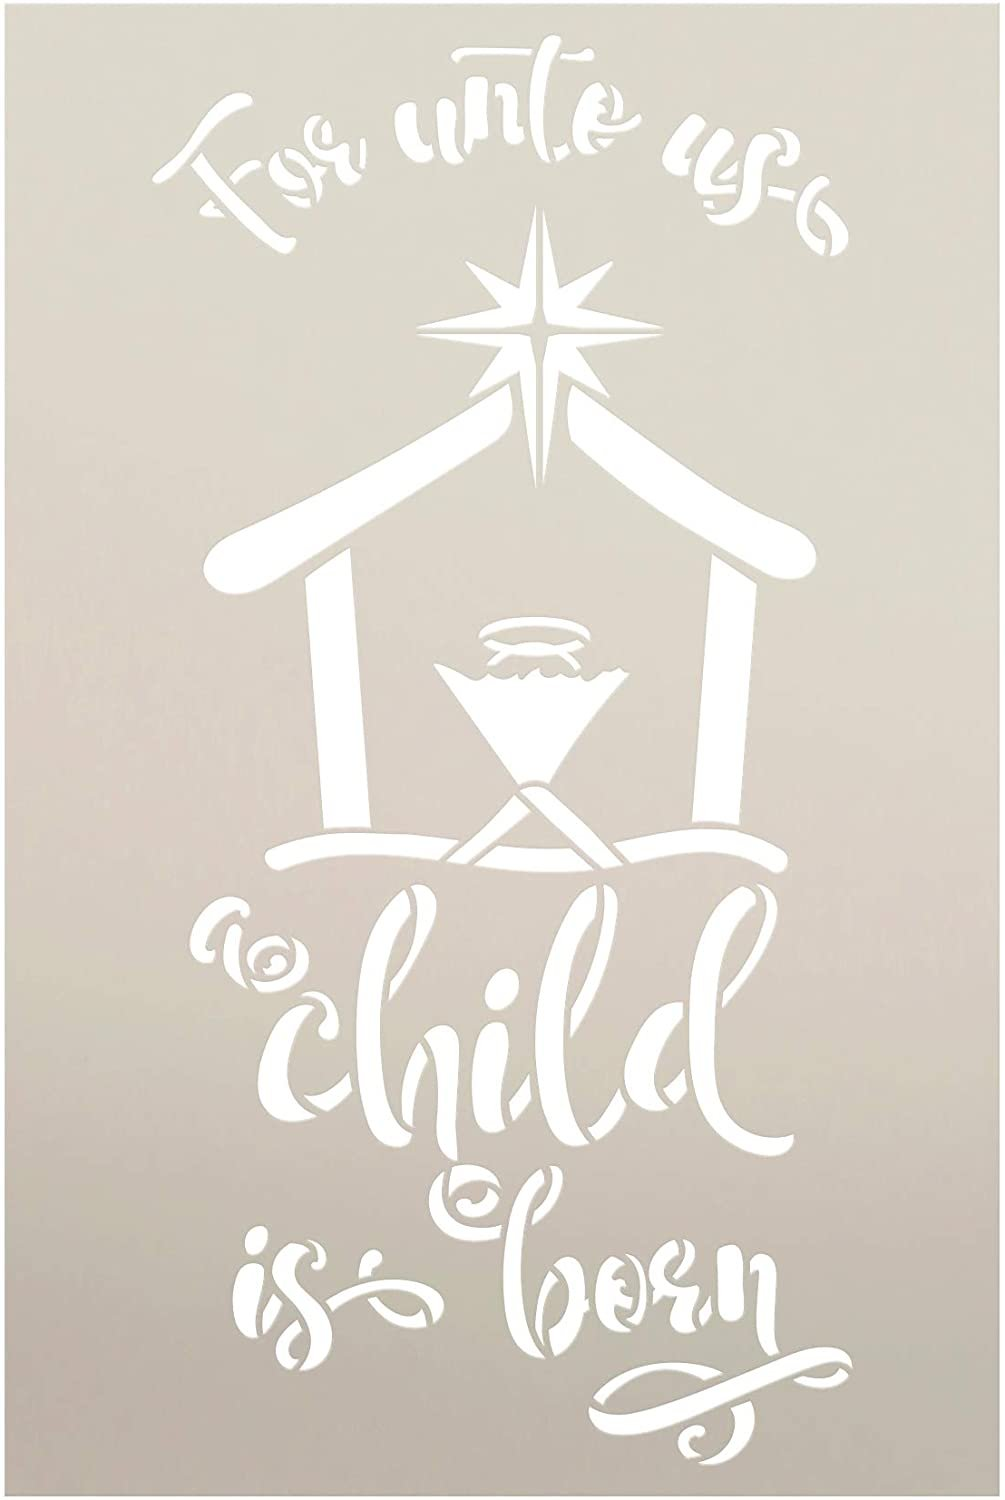 Unto Us a Child is Born Stencil by StudioR12 | DIY Christmas Faith Home Decor Gift | Craft & Paint Wood Sign | Reusable Mylar Template | Select Size